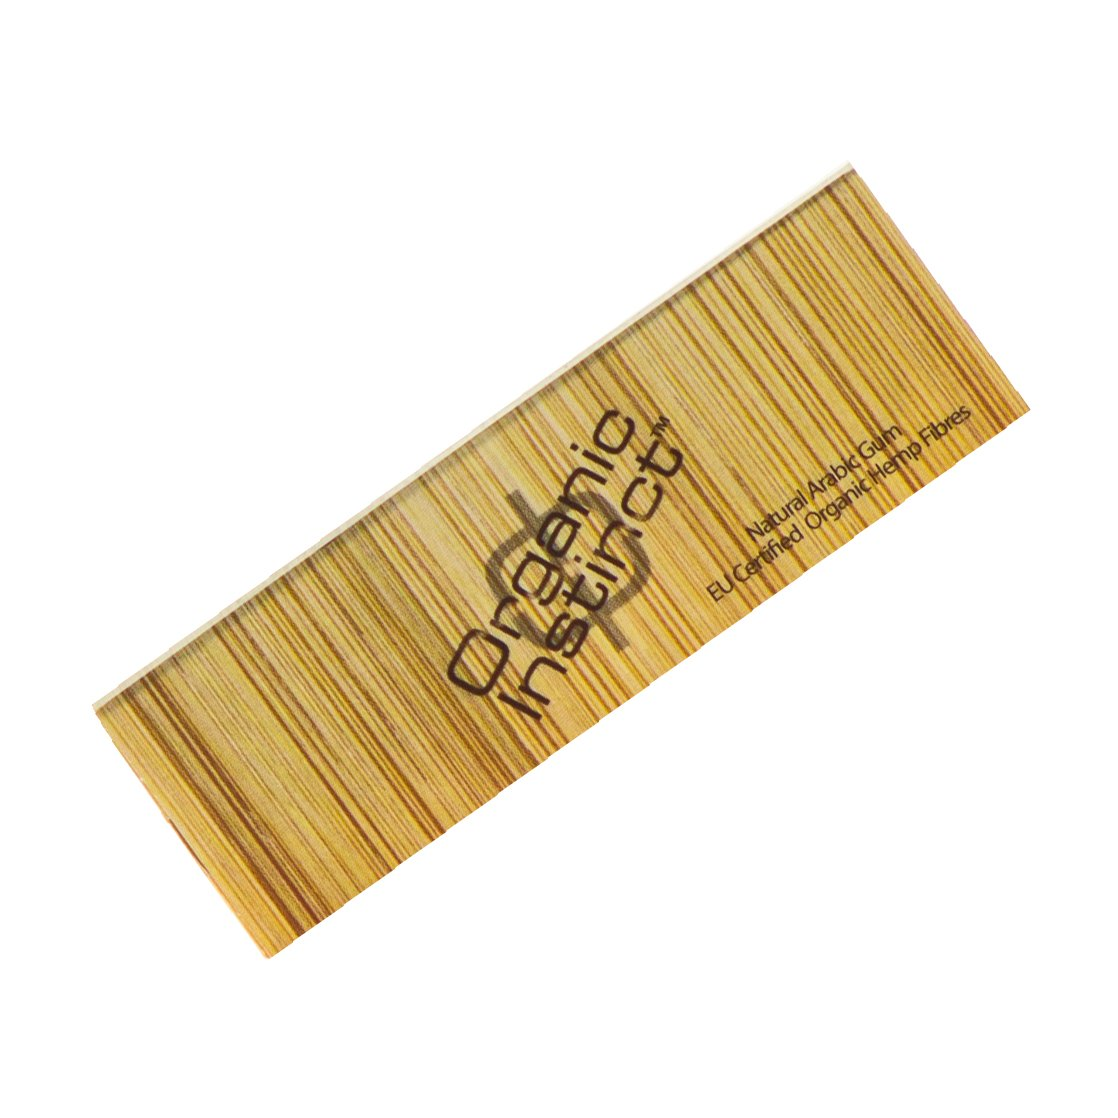 Organic Instinct Rolling Papers - $1.00 OFF